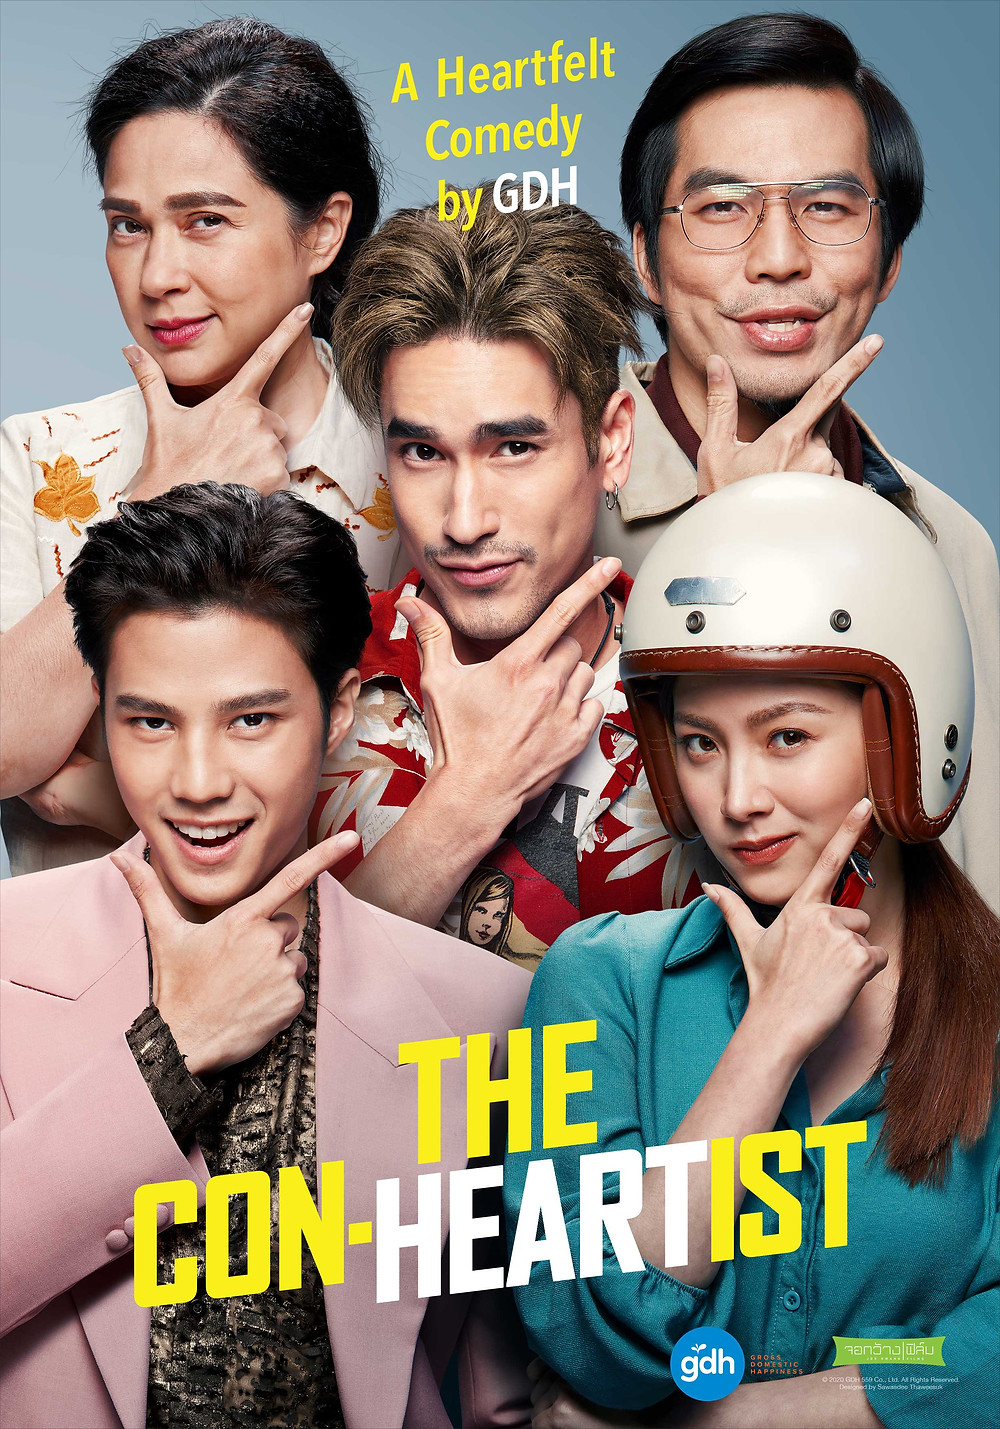 Promotional poster for the movie 'The Con-Heartist'